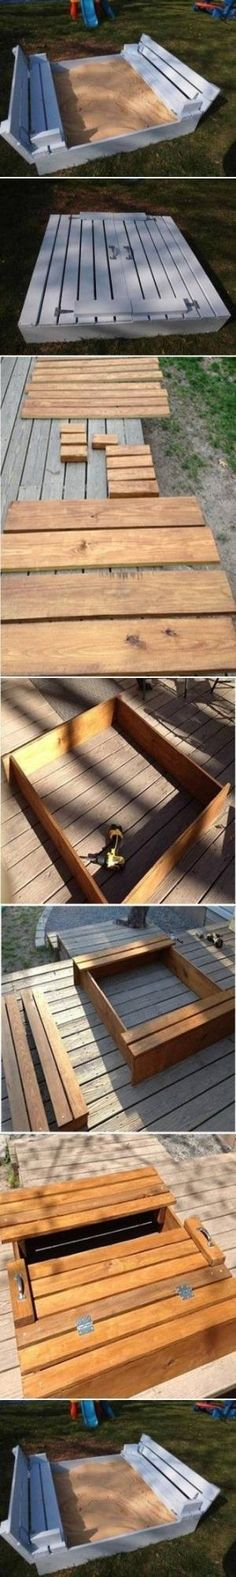 DIY Sandbox DIY Projects by yemaja.rogers